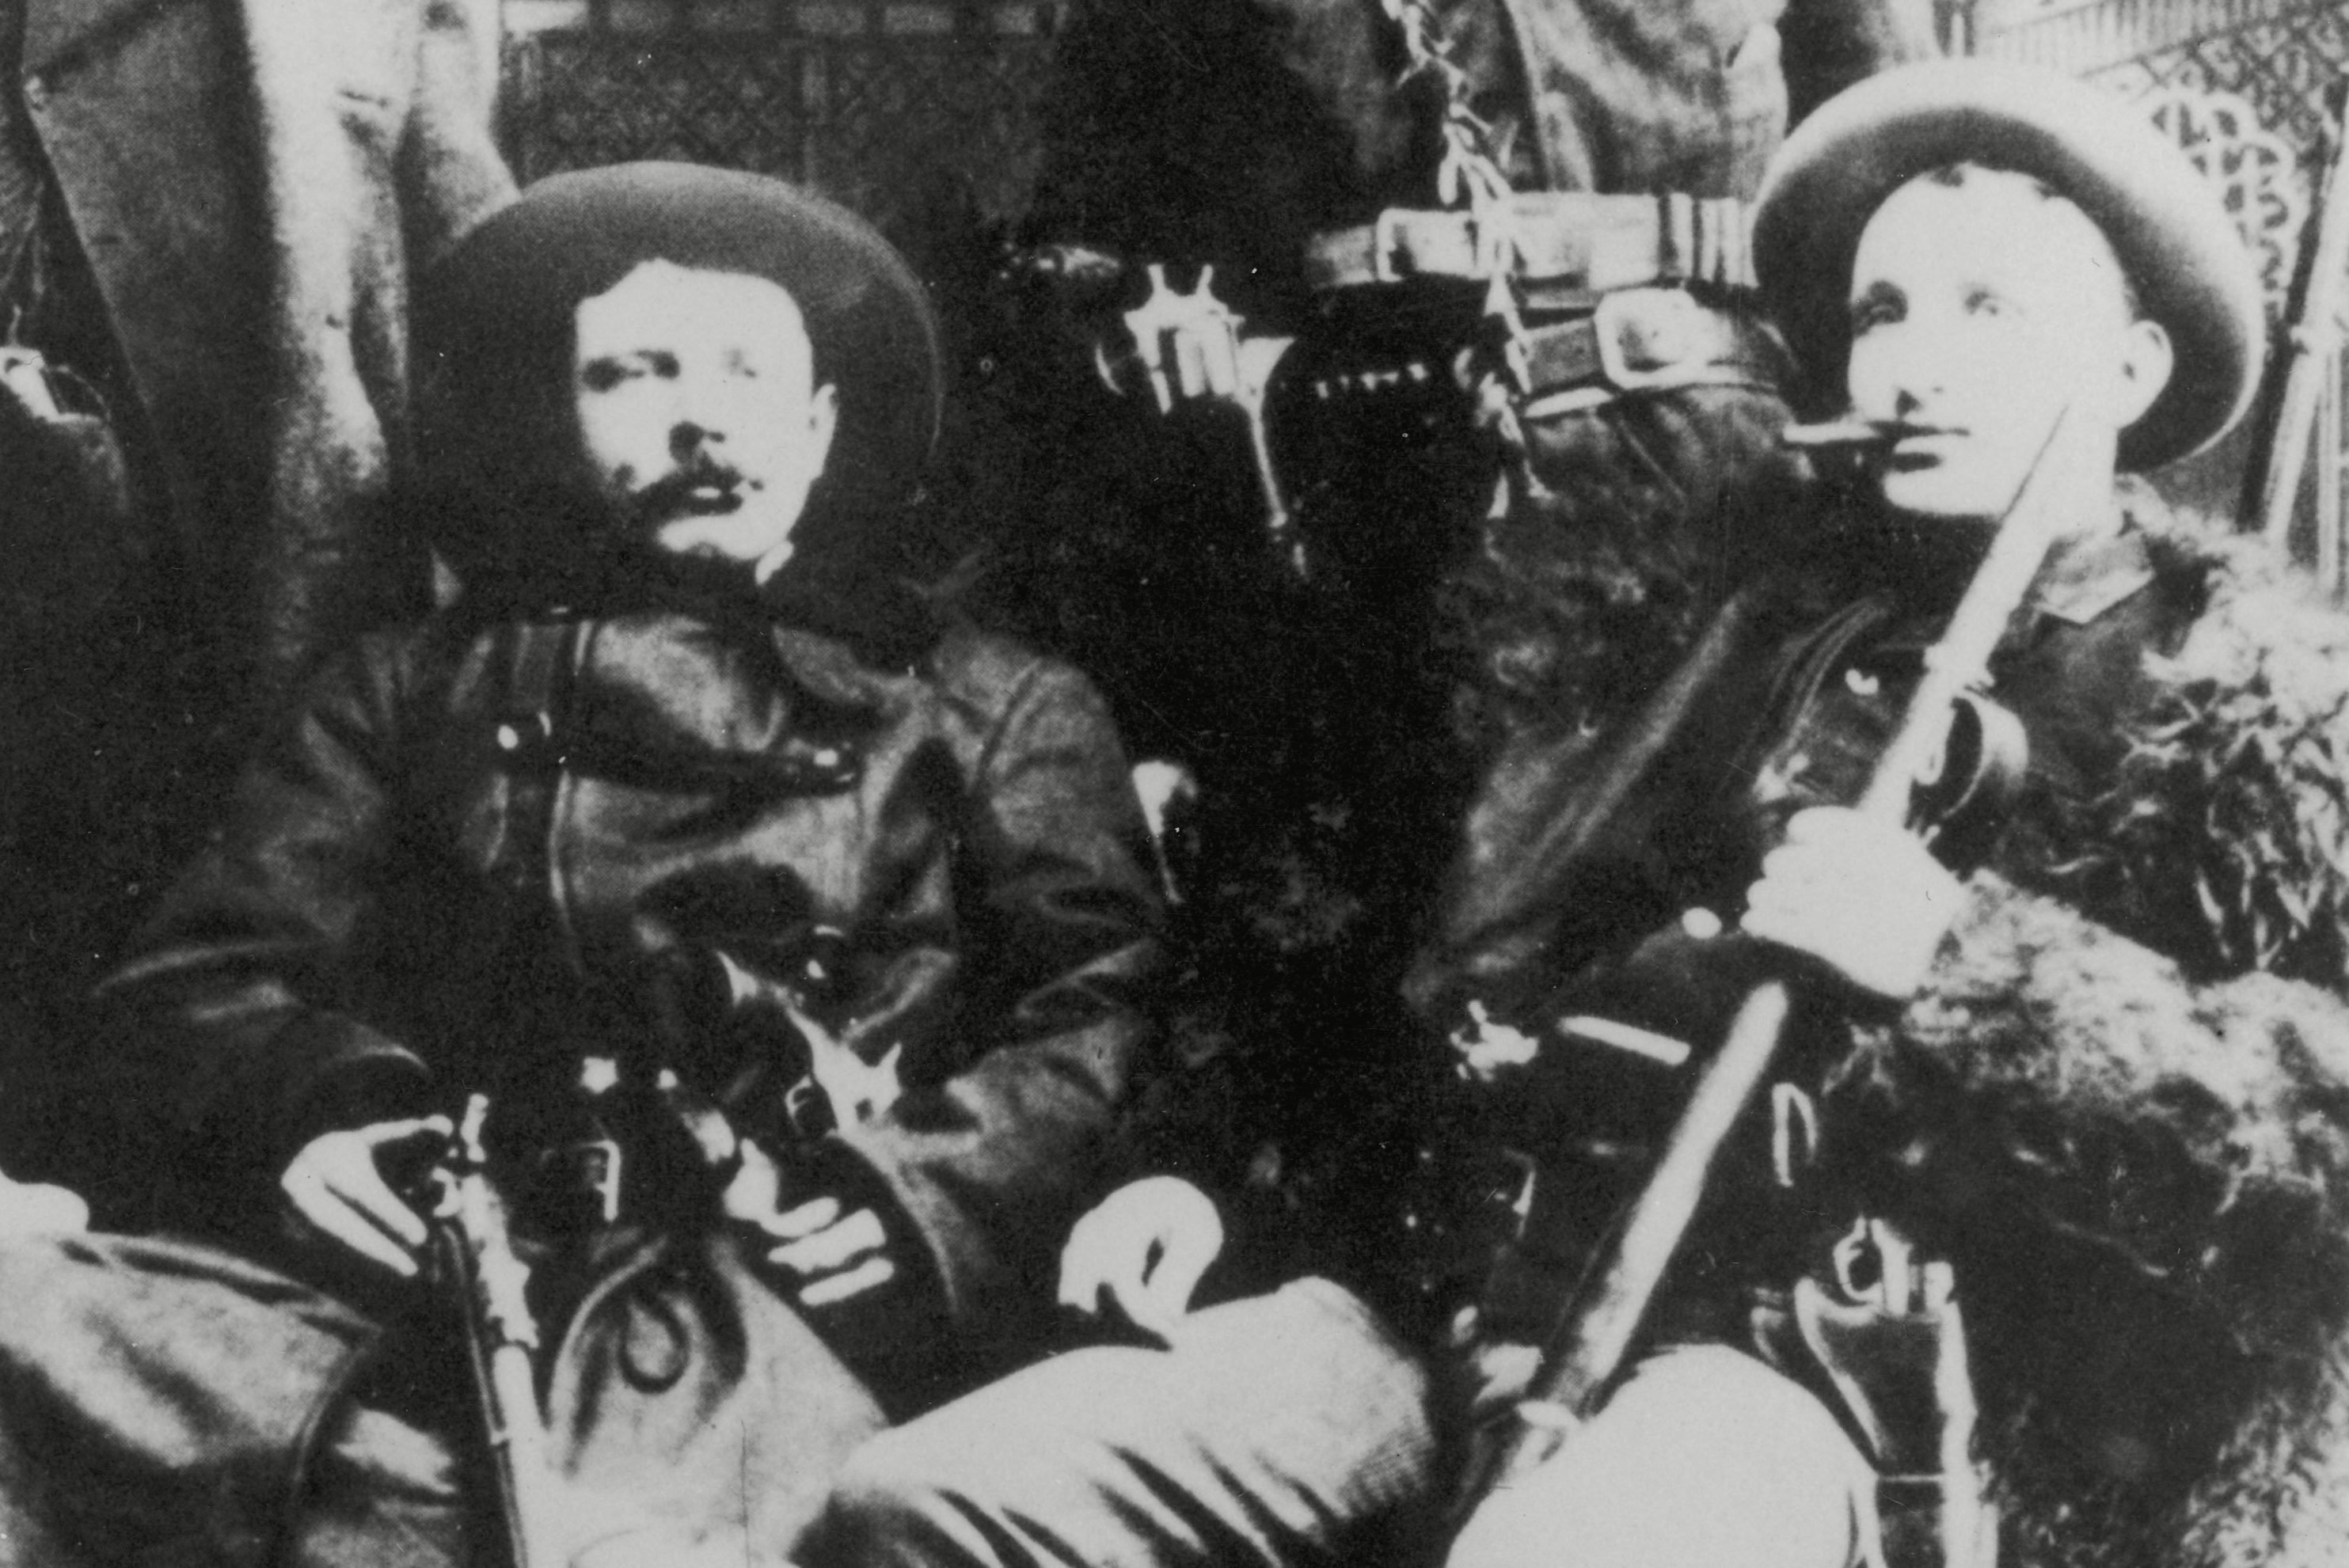 Mandatory Credit: Photo by Historia/Shutterstock (7665005hy) The James-younger Gang (l-r): Cole Younger Jesse James Bob Younger Frank James circa 1870 Historical Collection 111